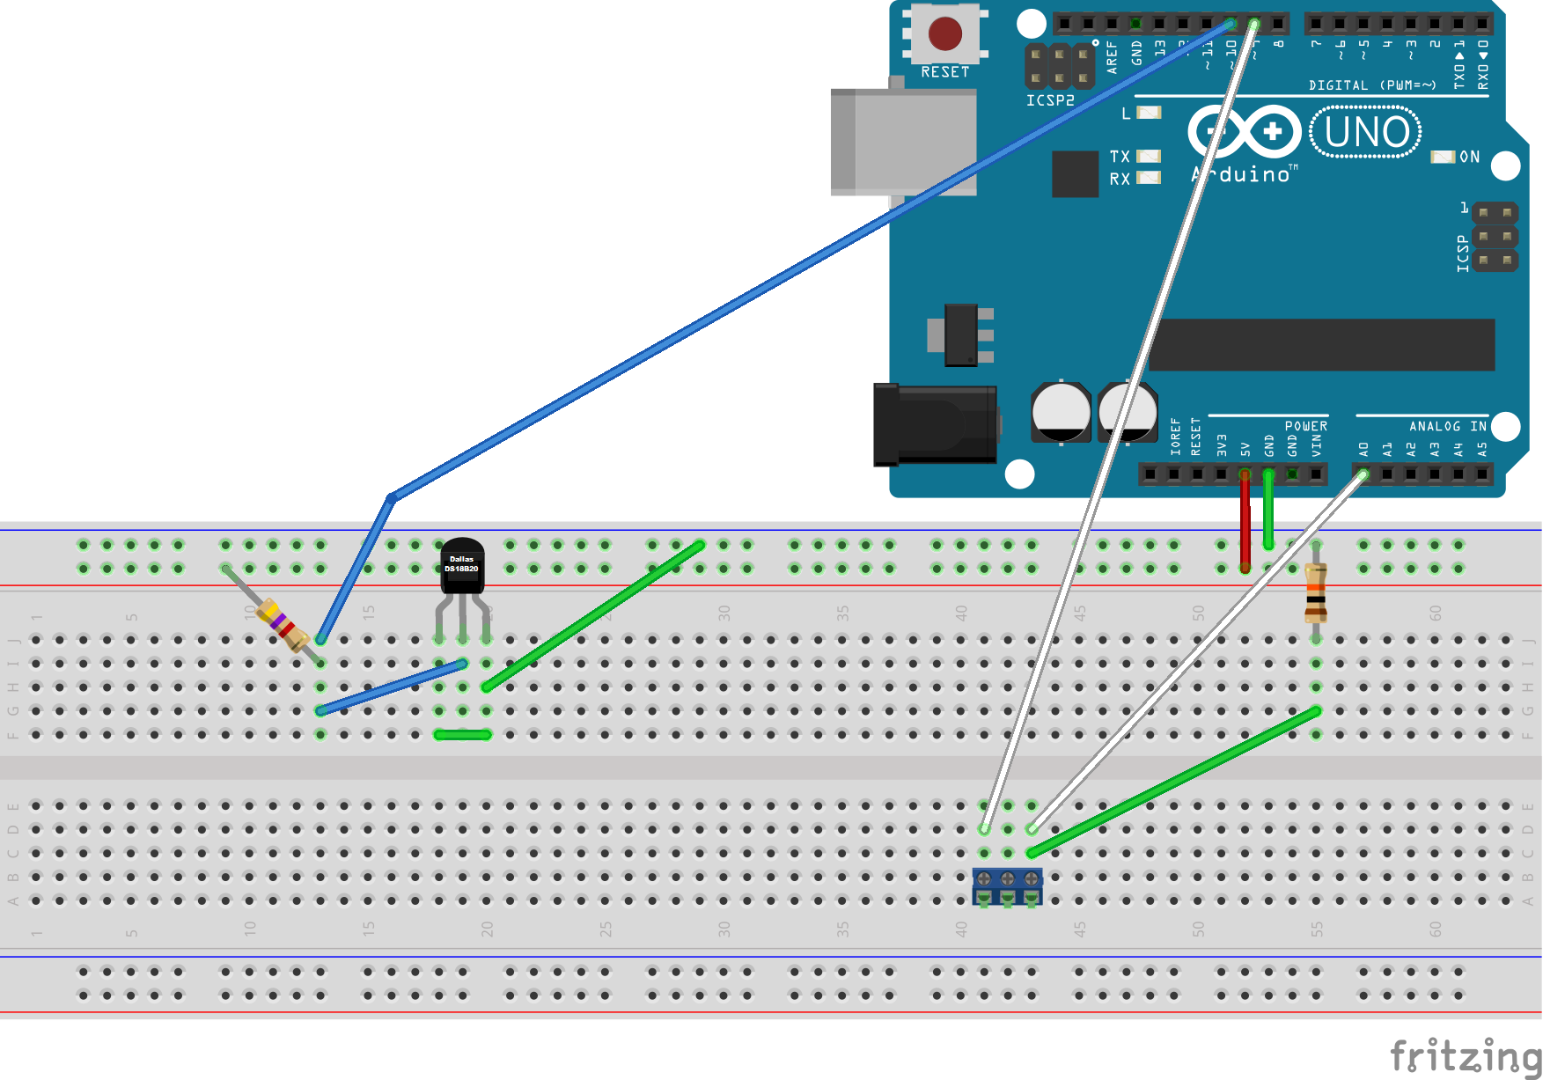 Instructions Arduino Gprs Iot Weather Station Ds18b20 Wiring The Is Easy To Set Up But Counter Intuitive And There Are Two Different Ways Wire It Which Can Create More Confusion